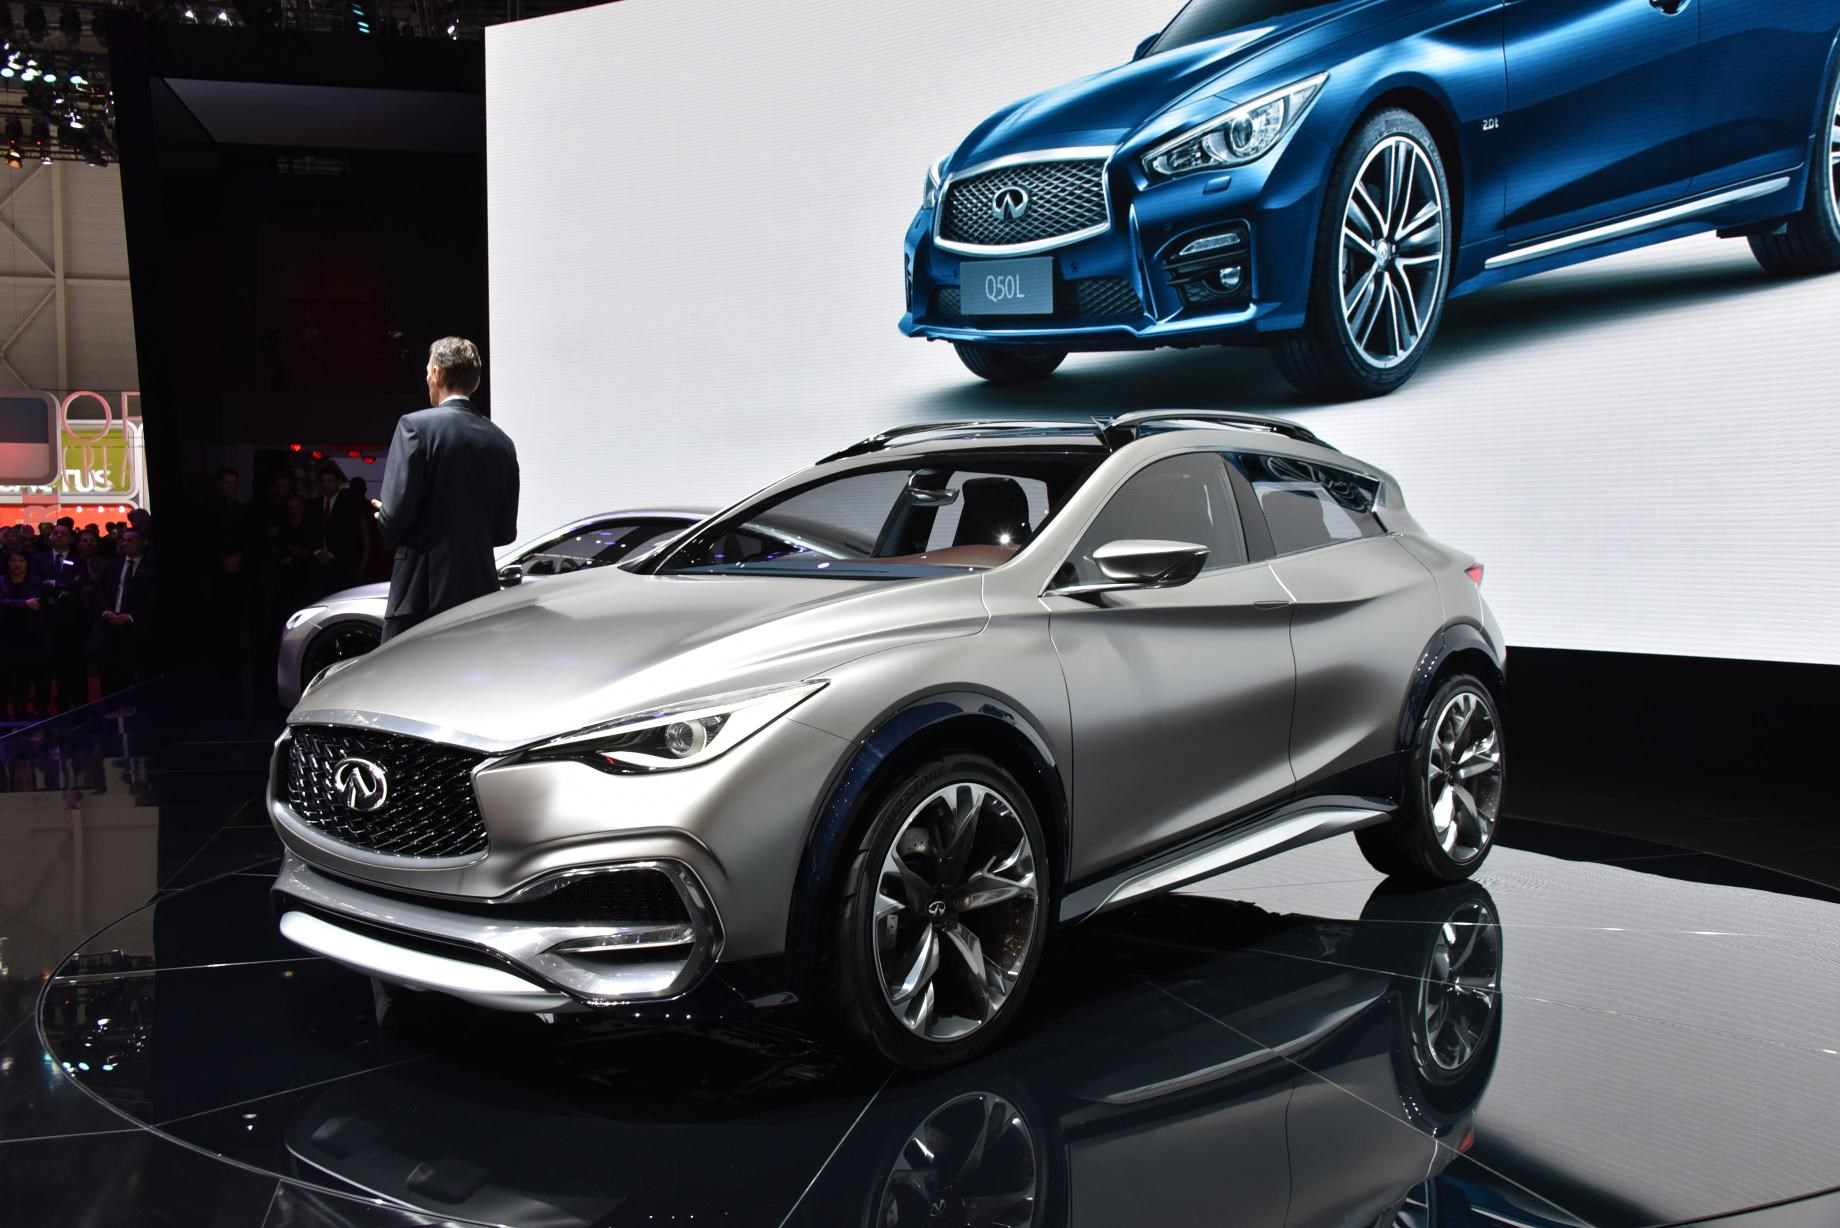 Infiniti Qx30 At The 2017 Geneva Motor Show